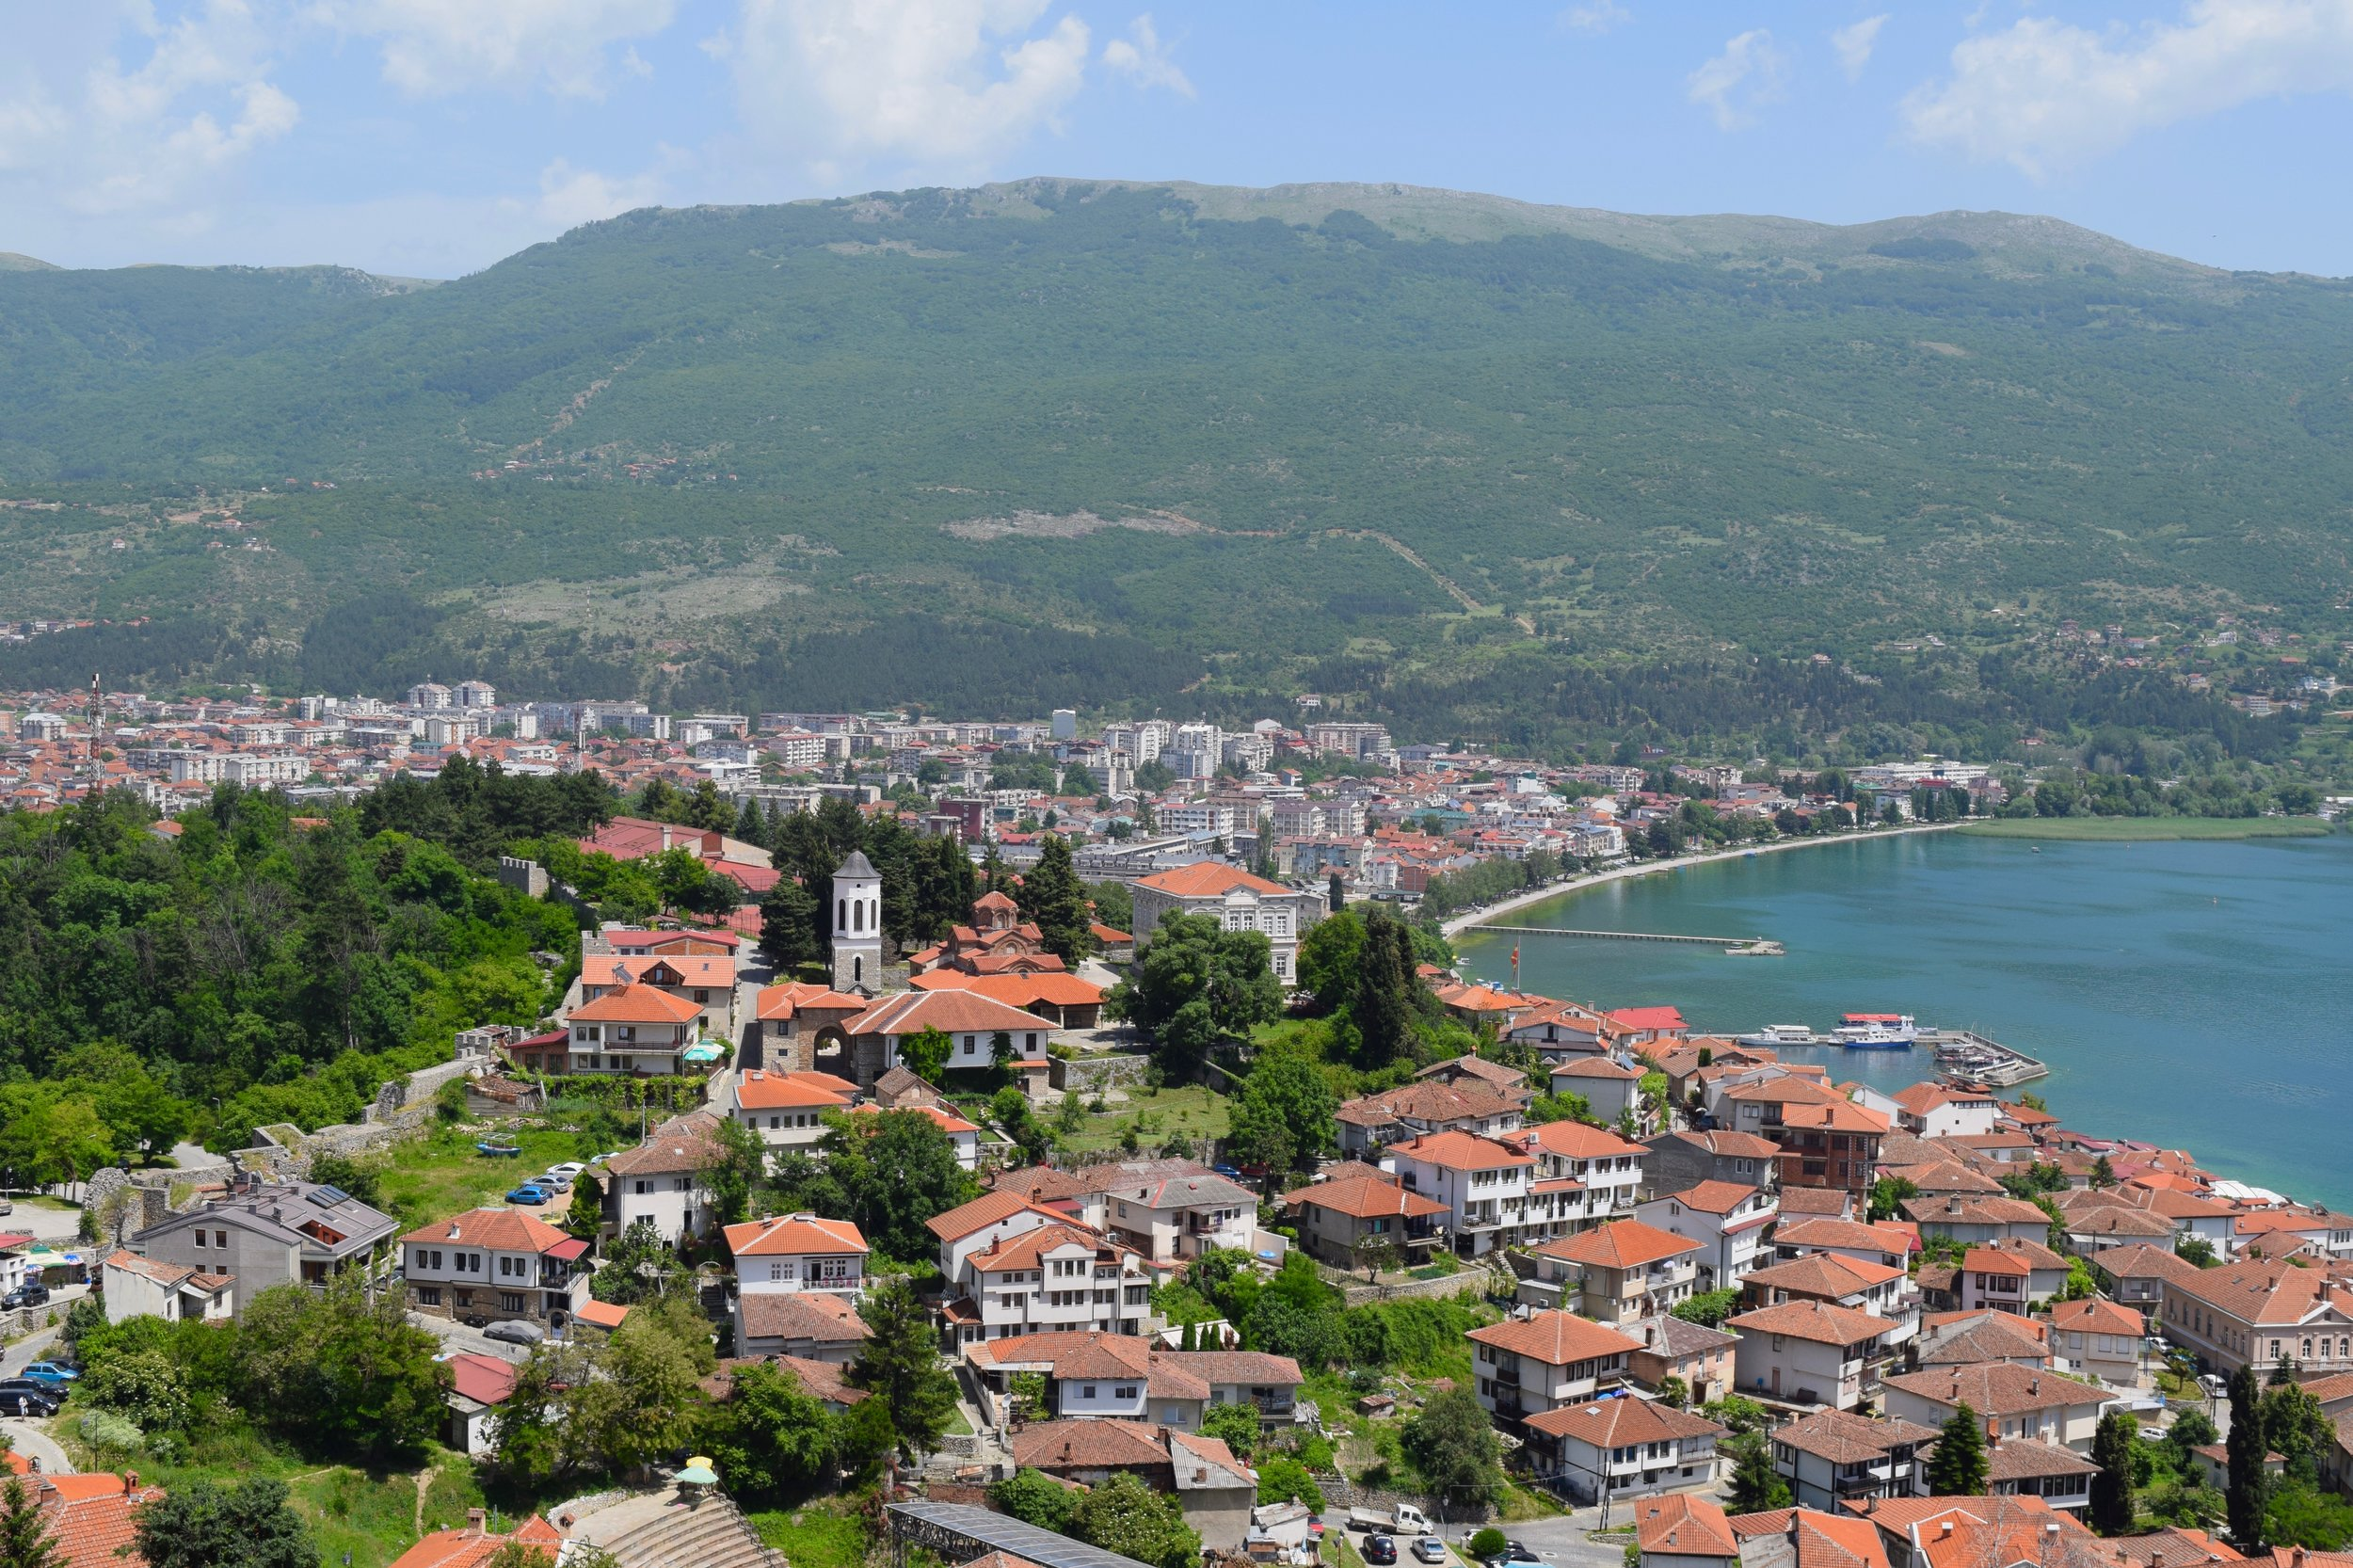 View from the fortress of Ohrid